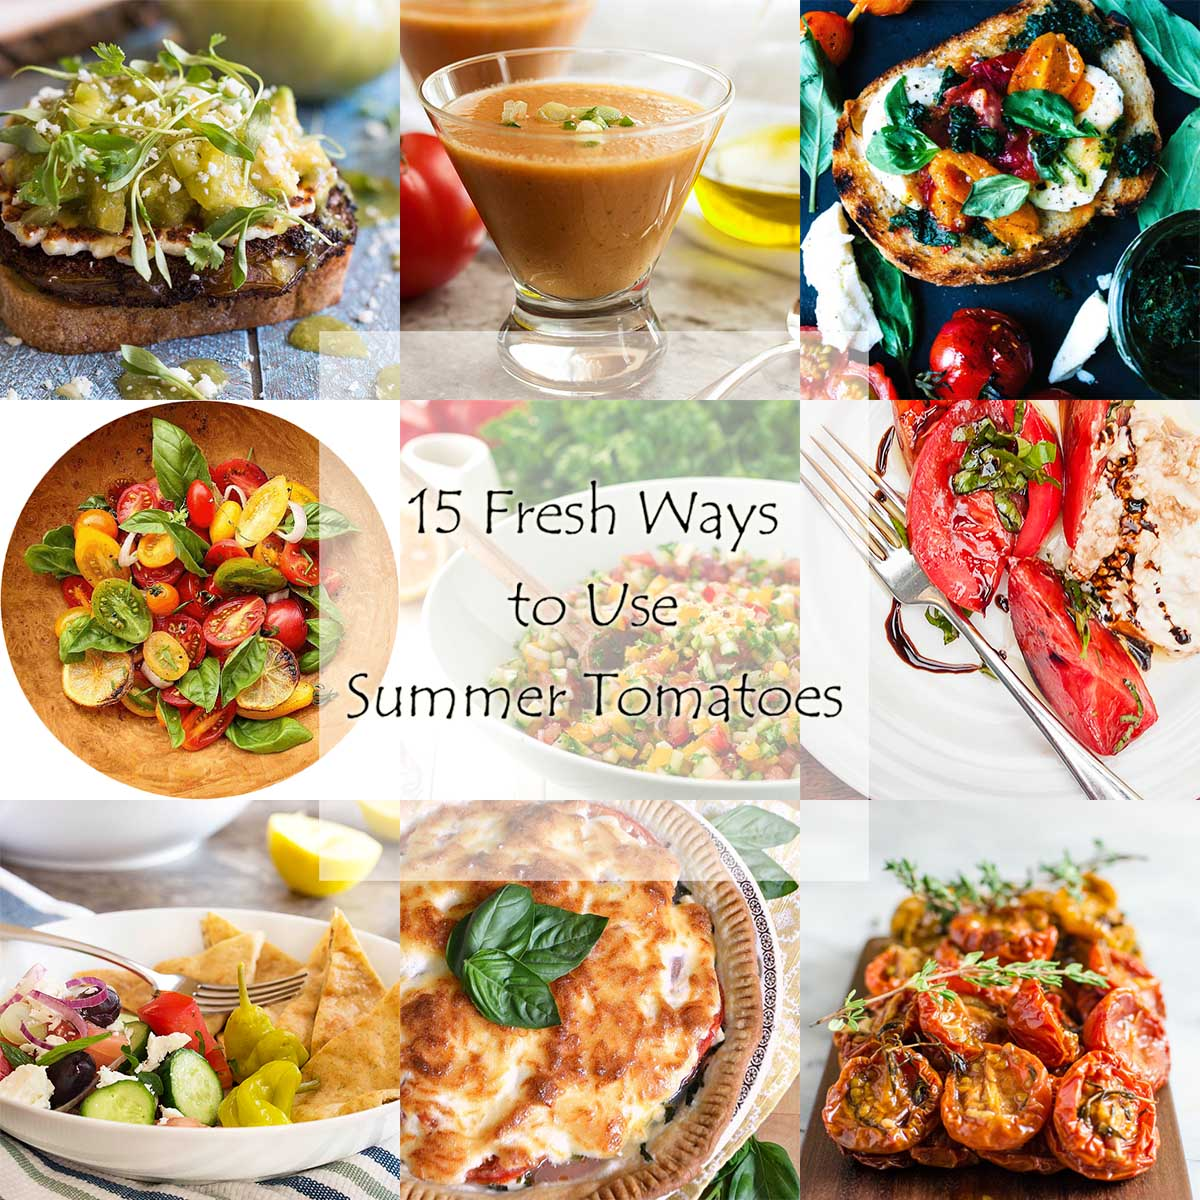 Summer Tomato Roundup - This roundup features 15 delicious summer recipes for tomatoes, including soup, sandwich, pasta, and salad recipes. | justalittlebitofbacon.com